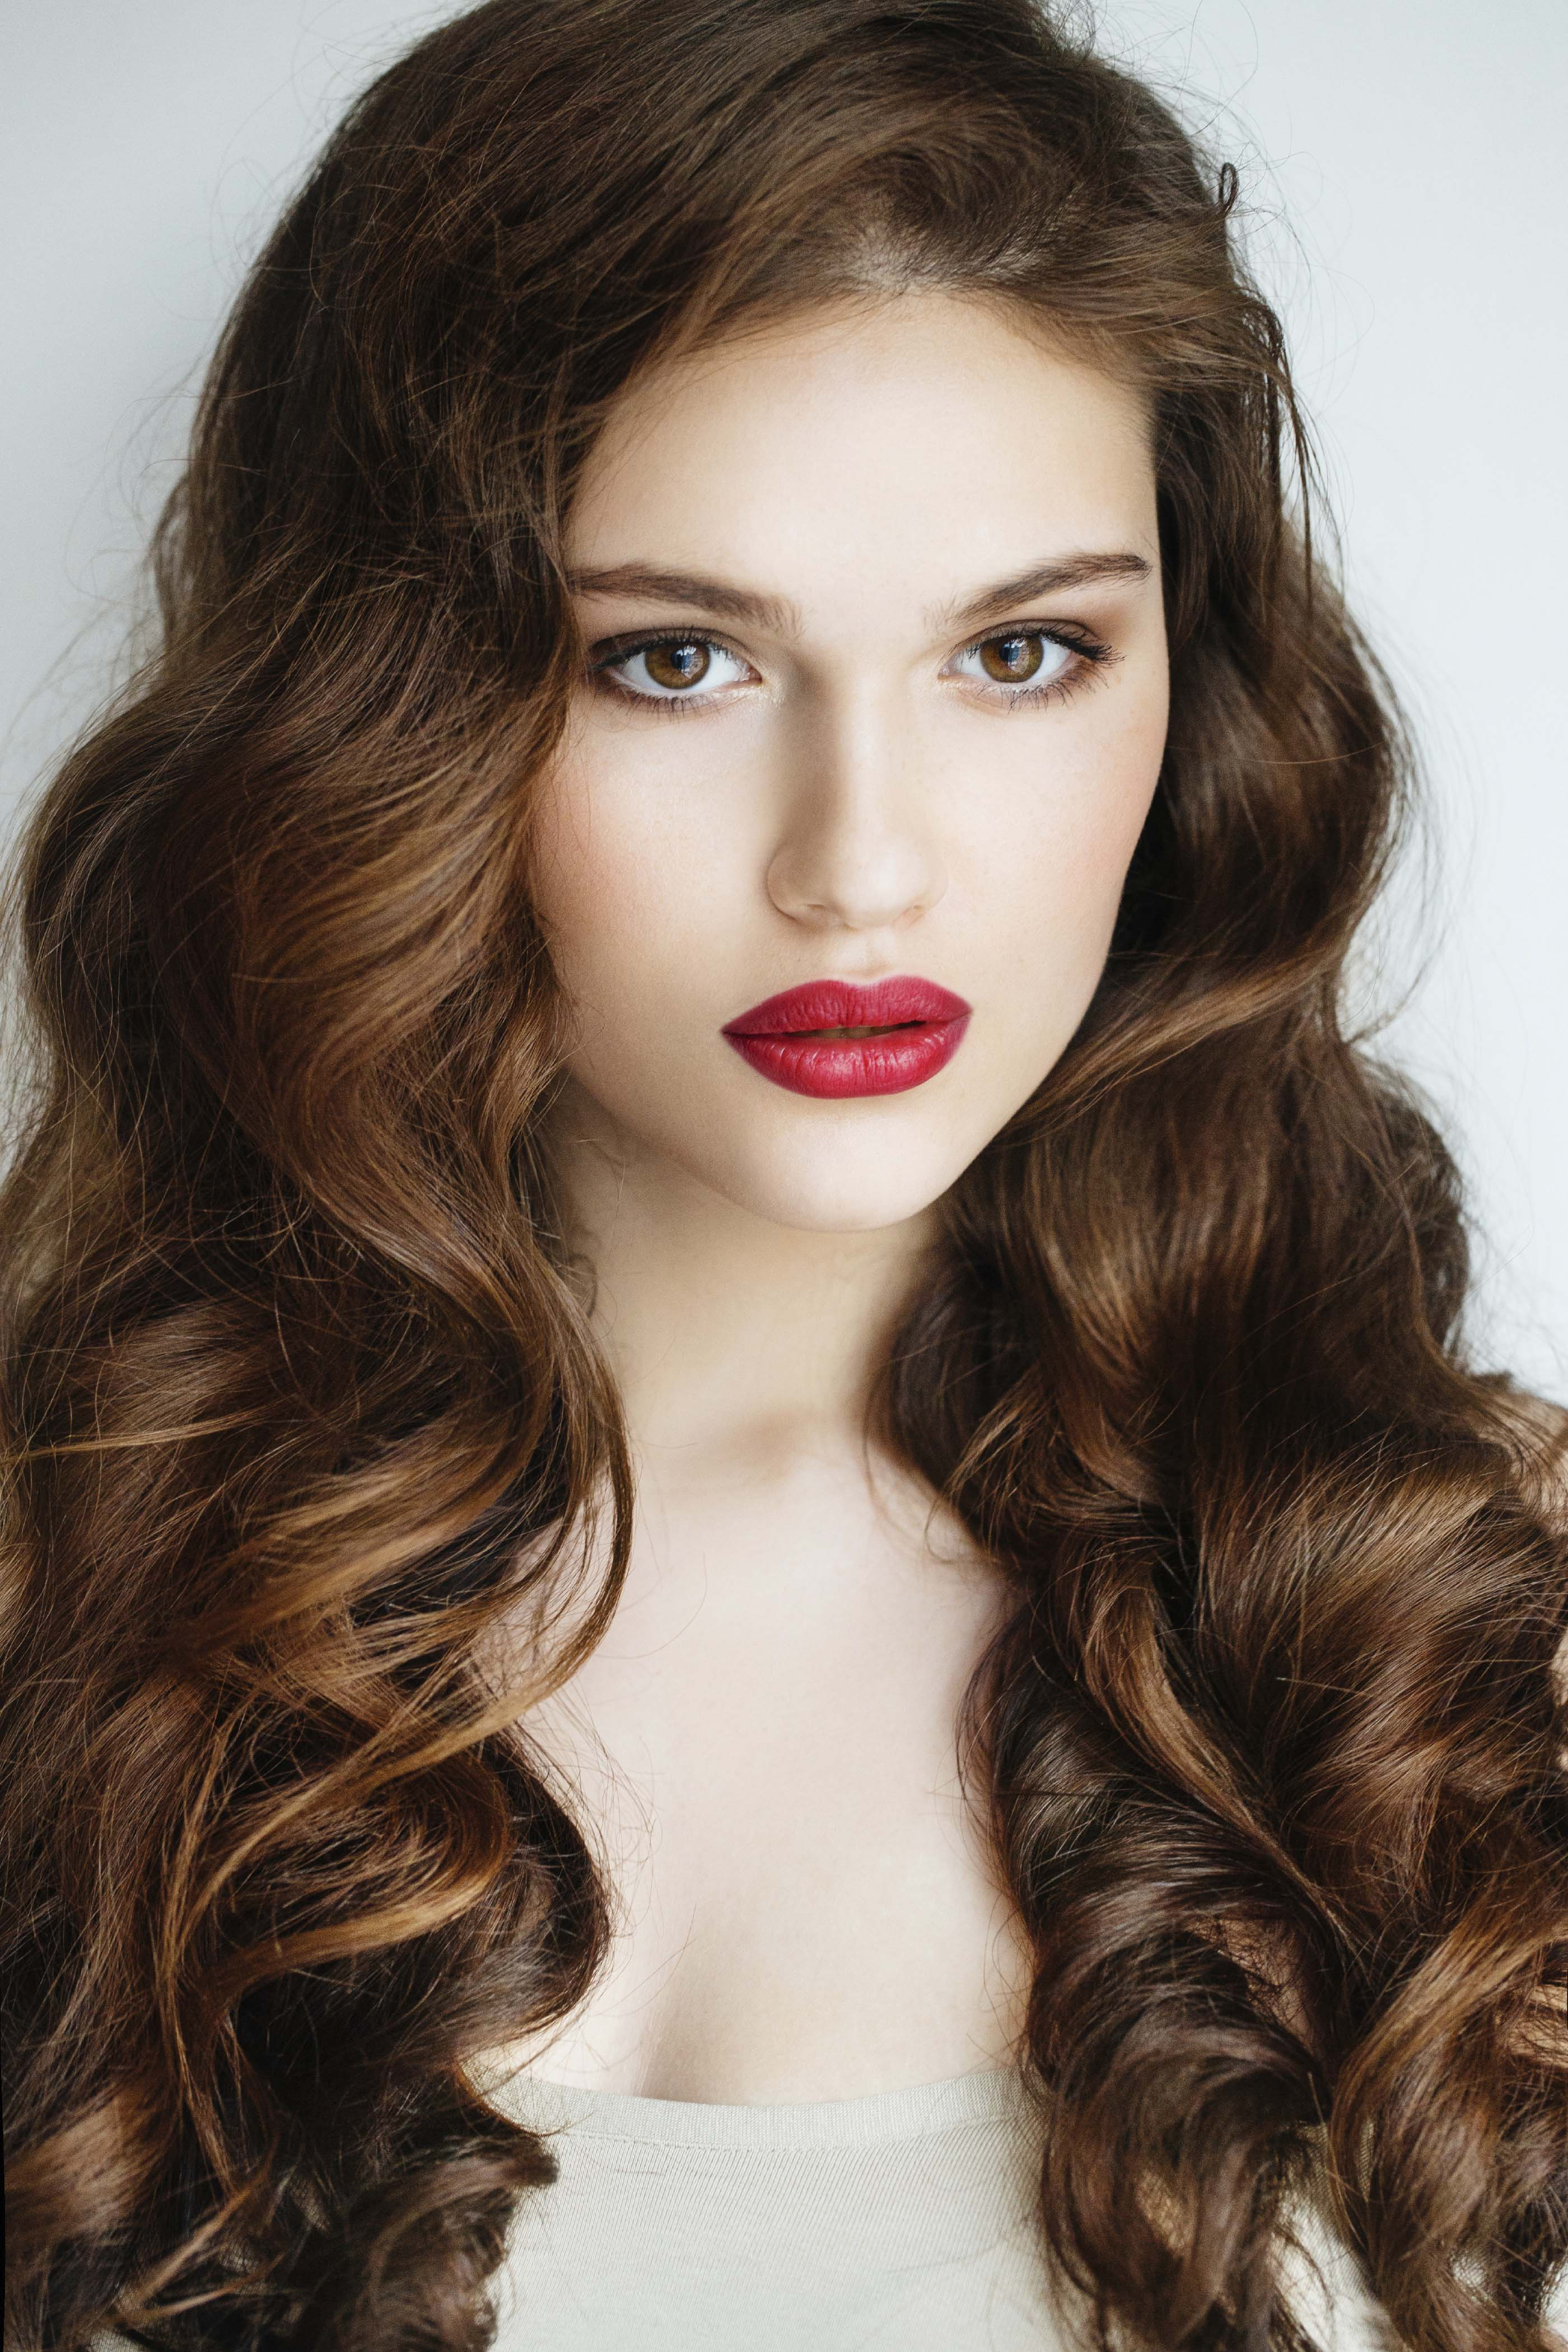 woman with long curly dark auburn red hair wearing red lipstick